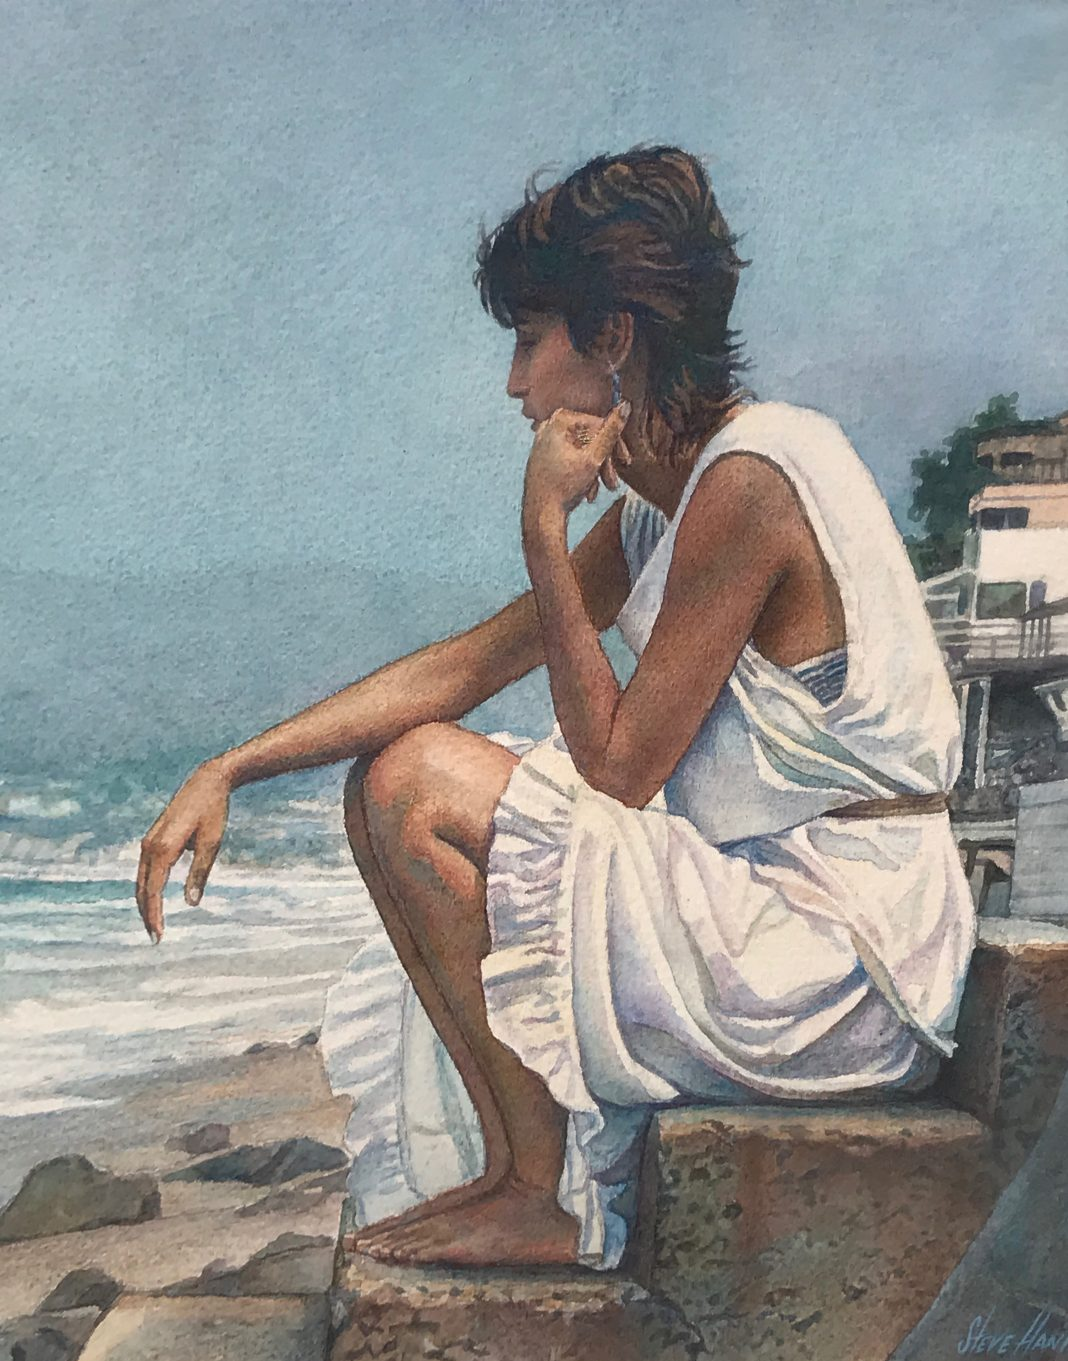 steve hanks shore steps figure figurative woman beach ocean watercolor painting